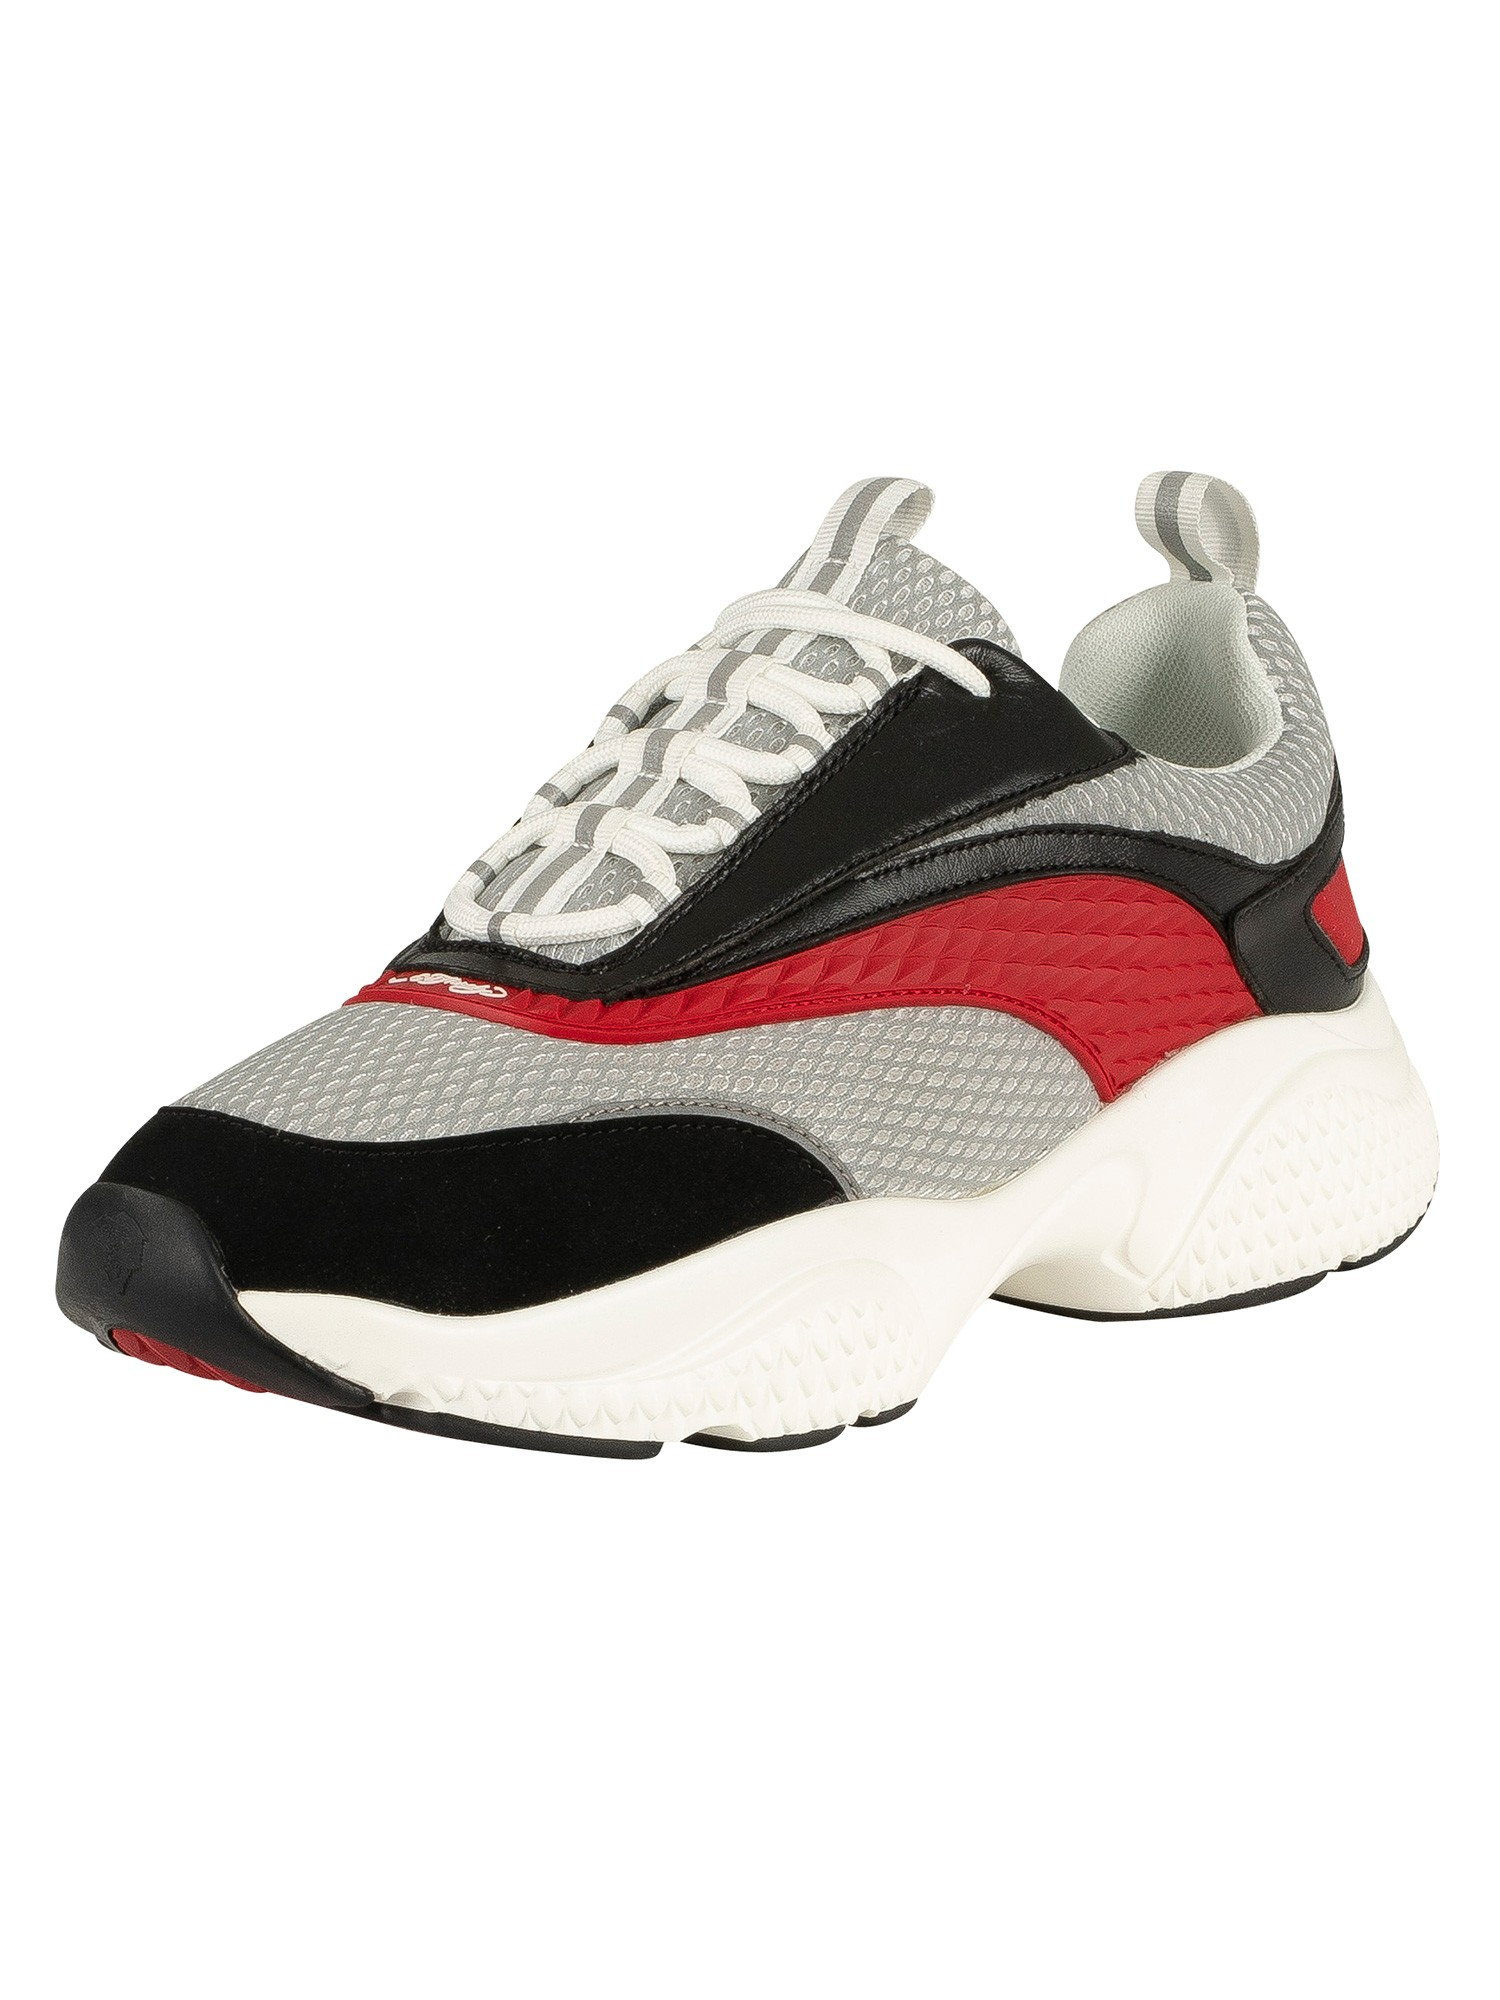 Ed Hardy Men's Scale 3M Runner Leather